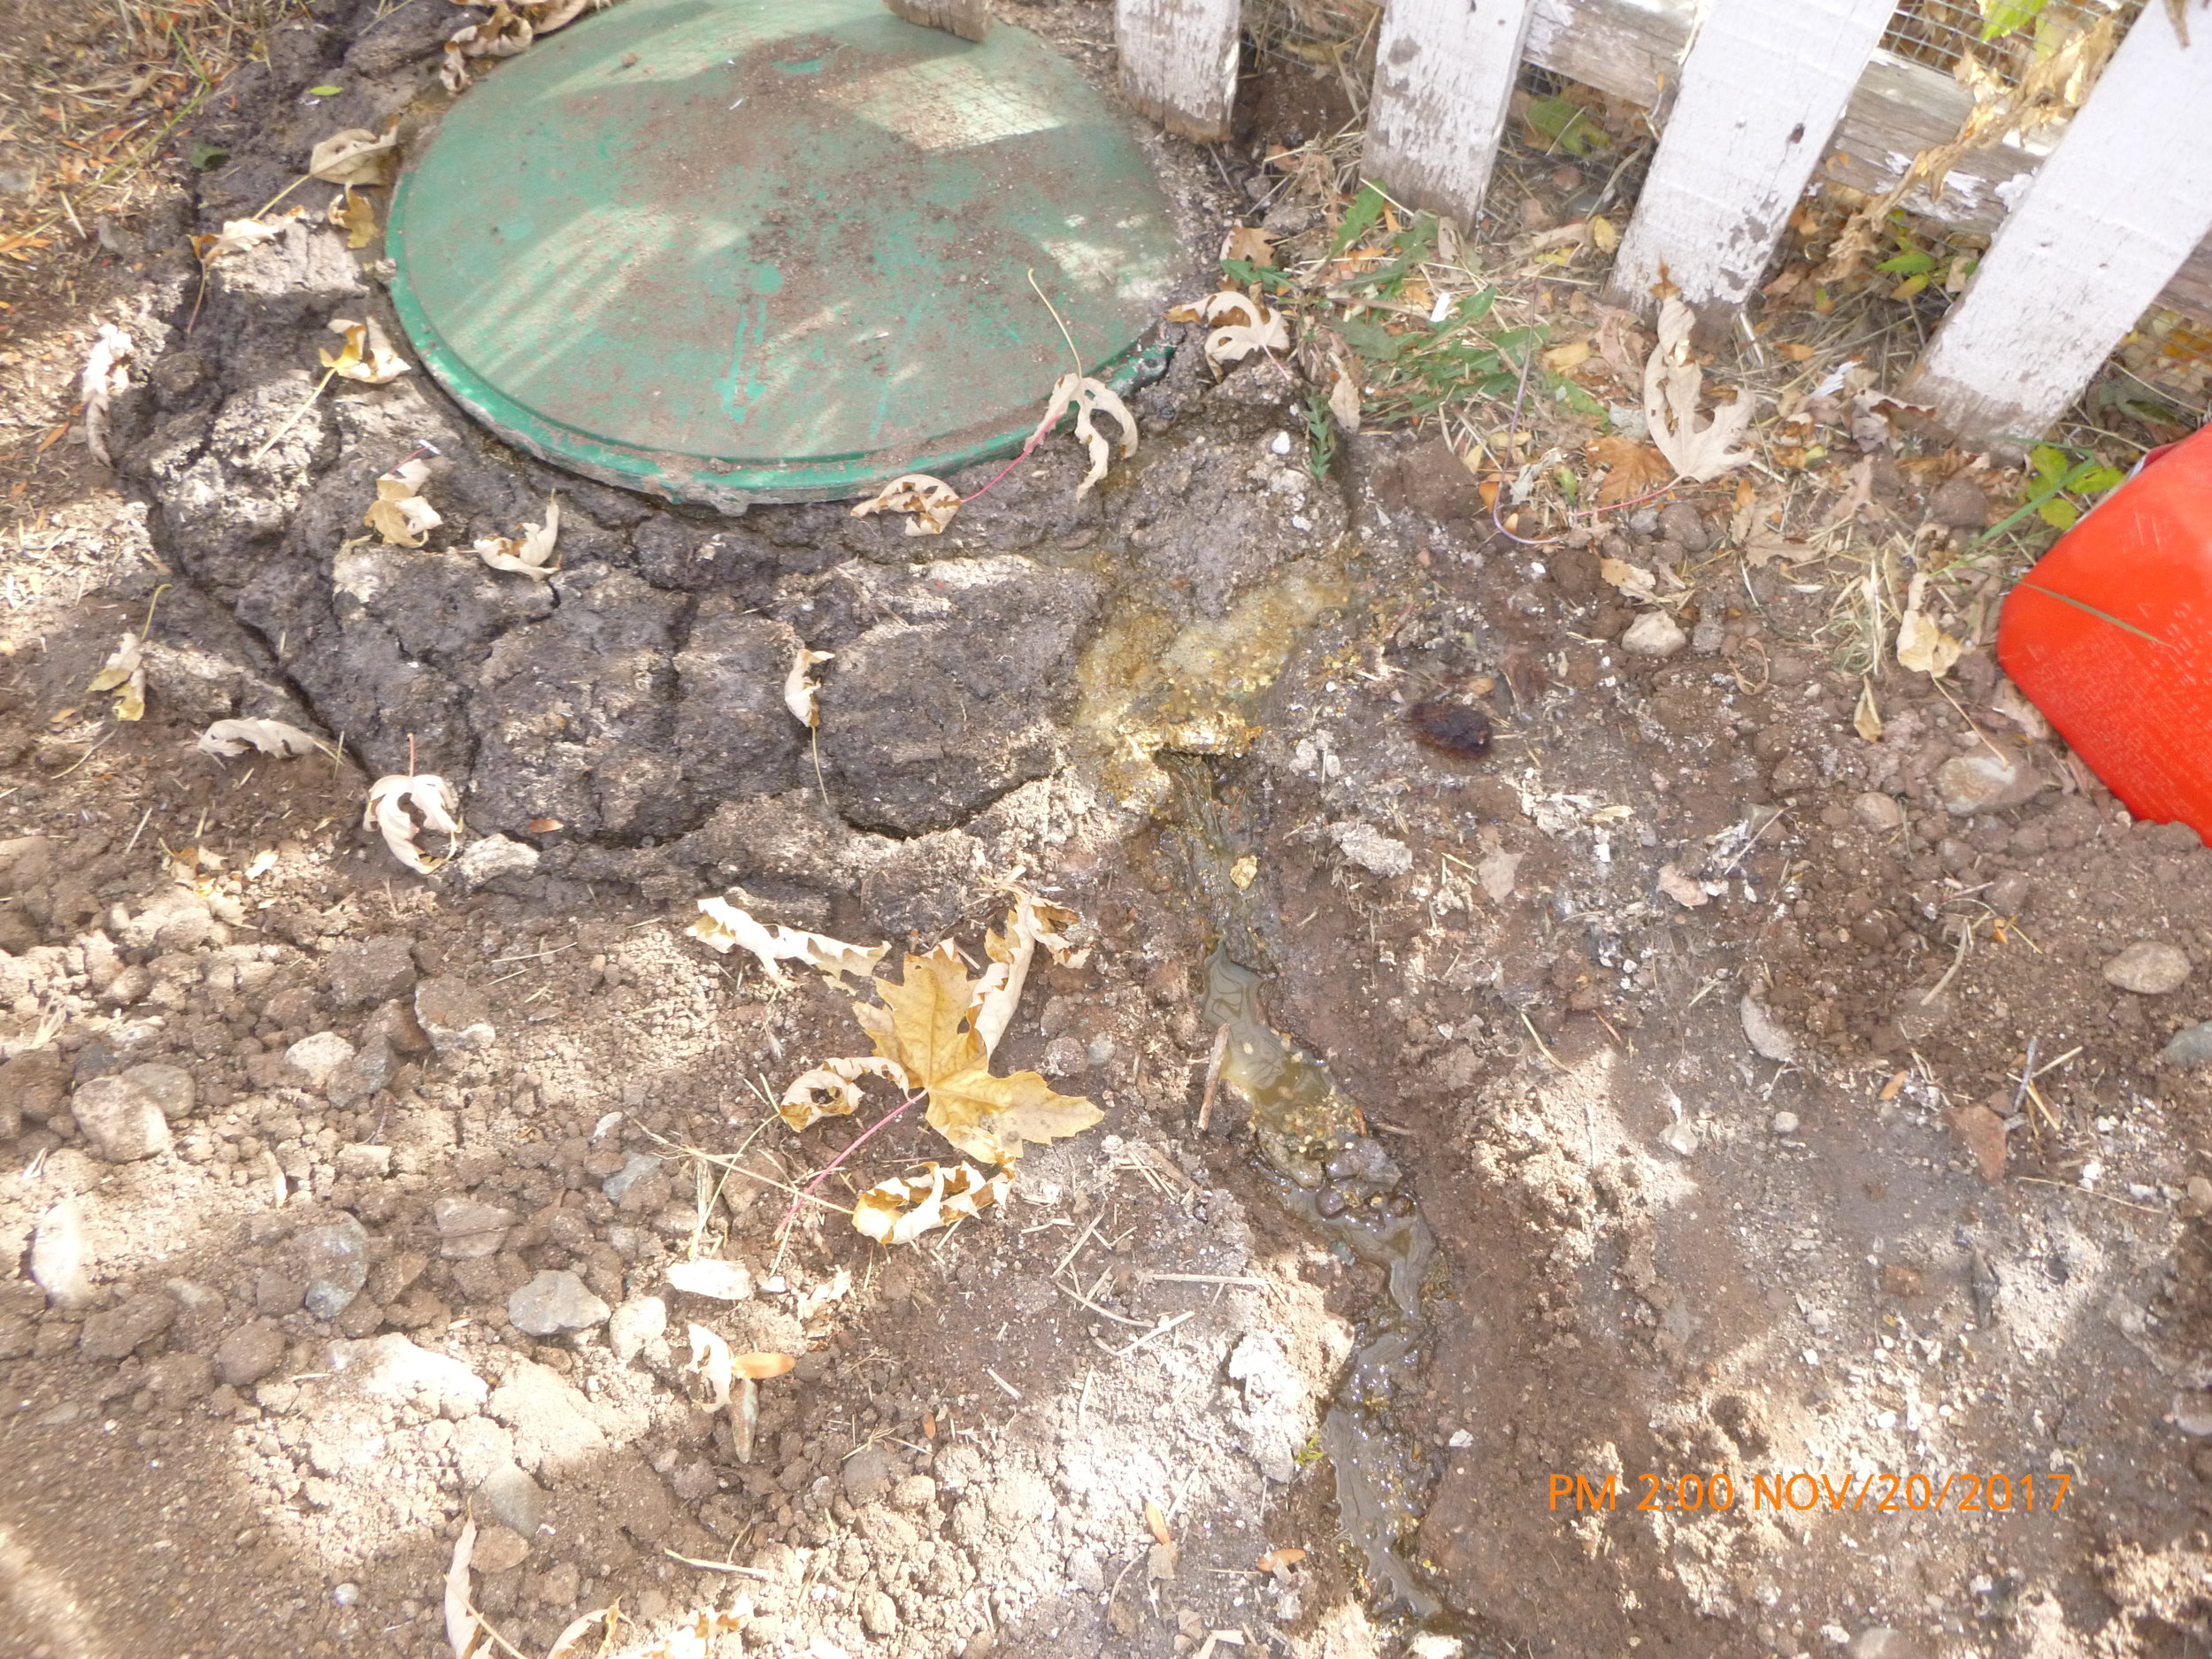 DON'T LET THIS BE YOU! - This is an extreme case of an overfull tank. Sewage is coming out of the tank access openings and spilling into the yard!